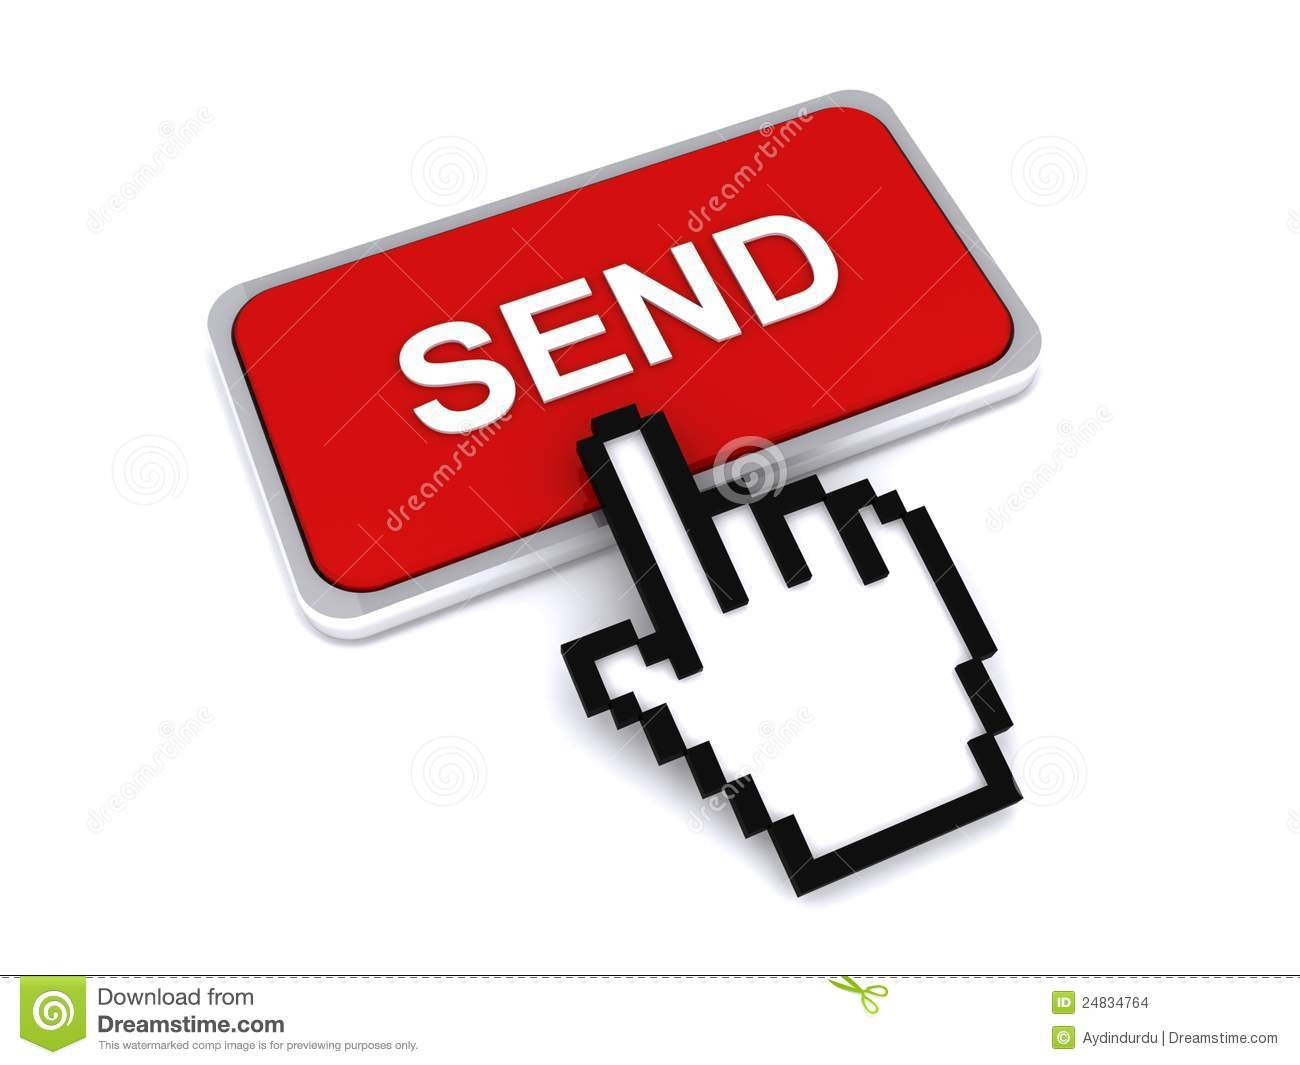 Sending pictures images 80